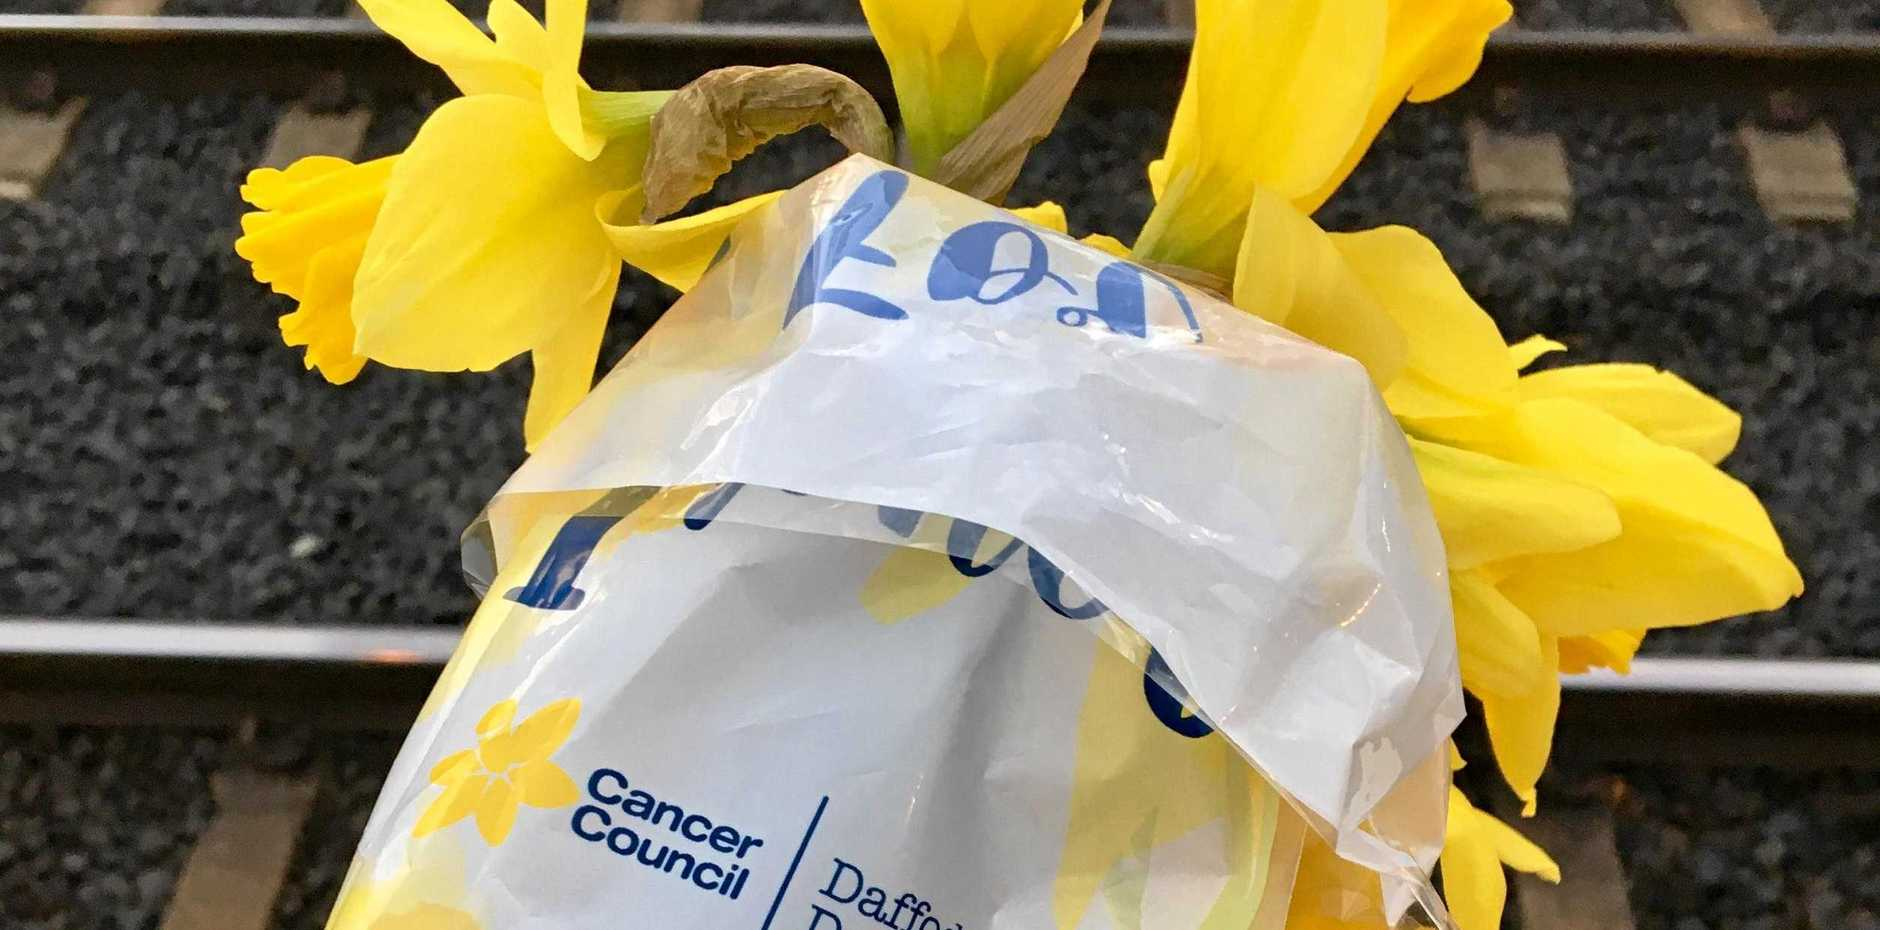 Climb on board the fundraising effort this Daffodil Day.